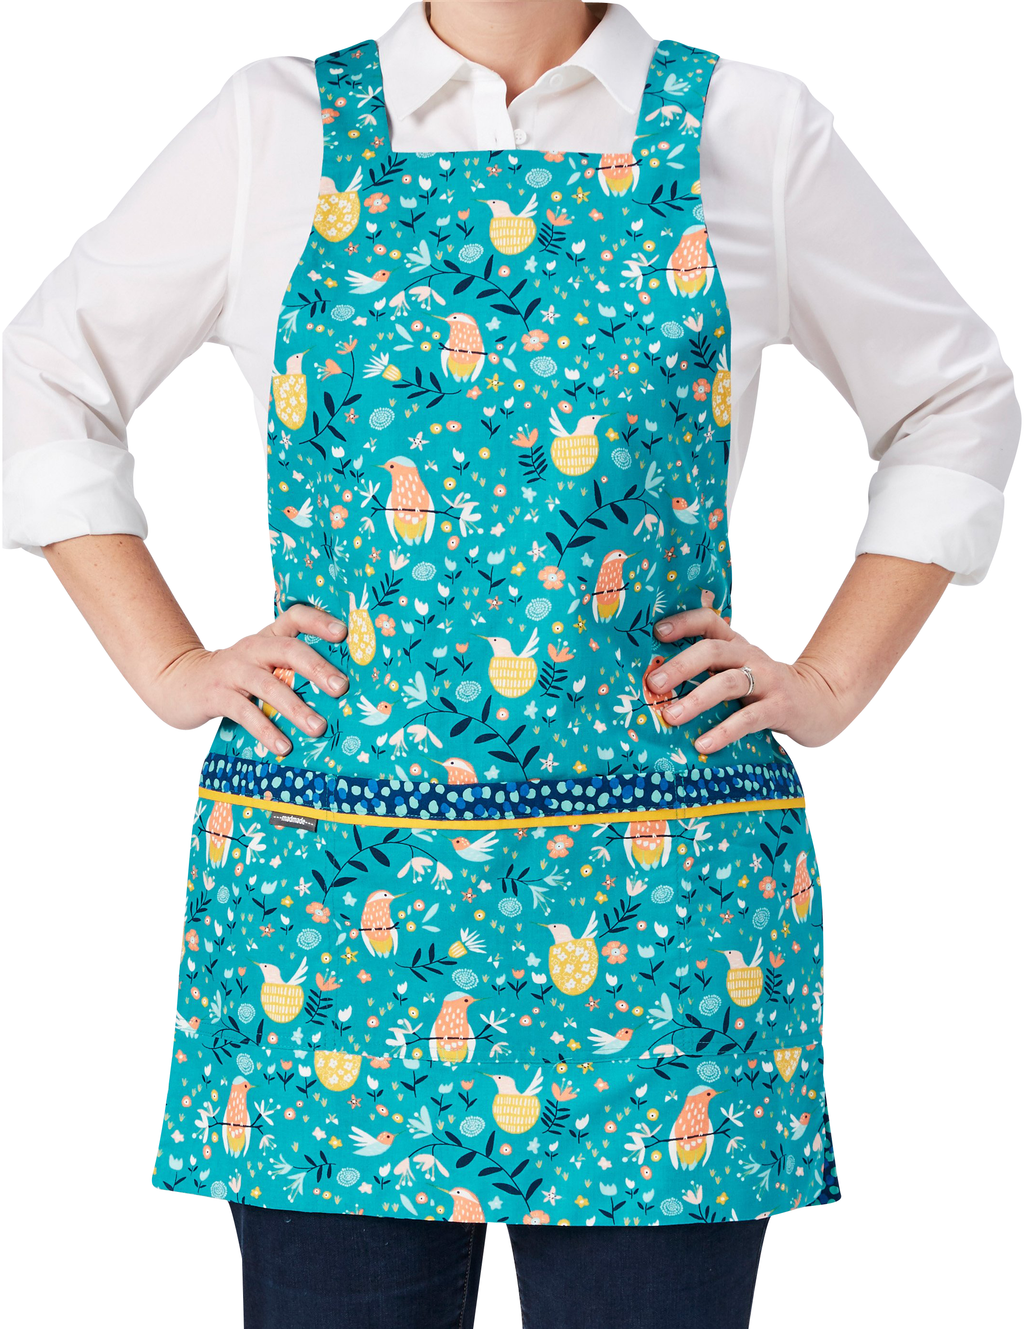 Cute kitchen apron with pockets in a whimsical print of humming birds, flowers and dots on one side, reversing to a dot pattern on the other in a combination of turquoise, navy, orange and yellow, humming bird print side, front view.